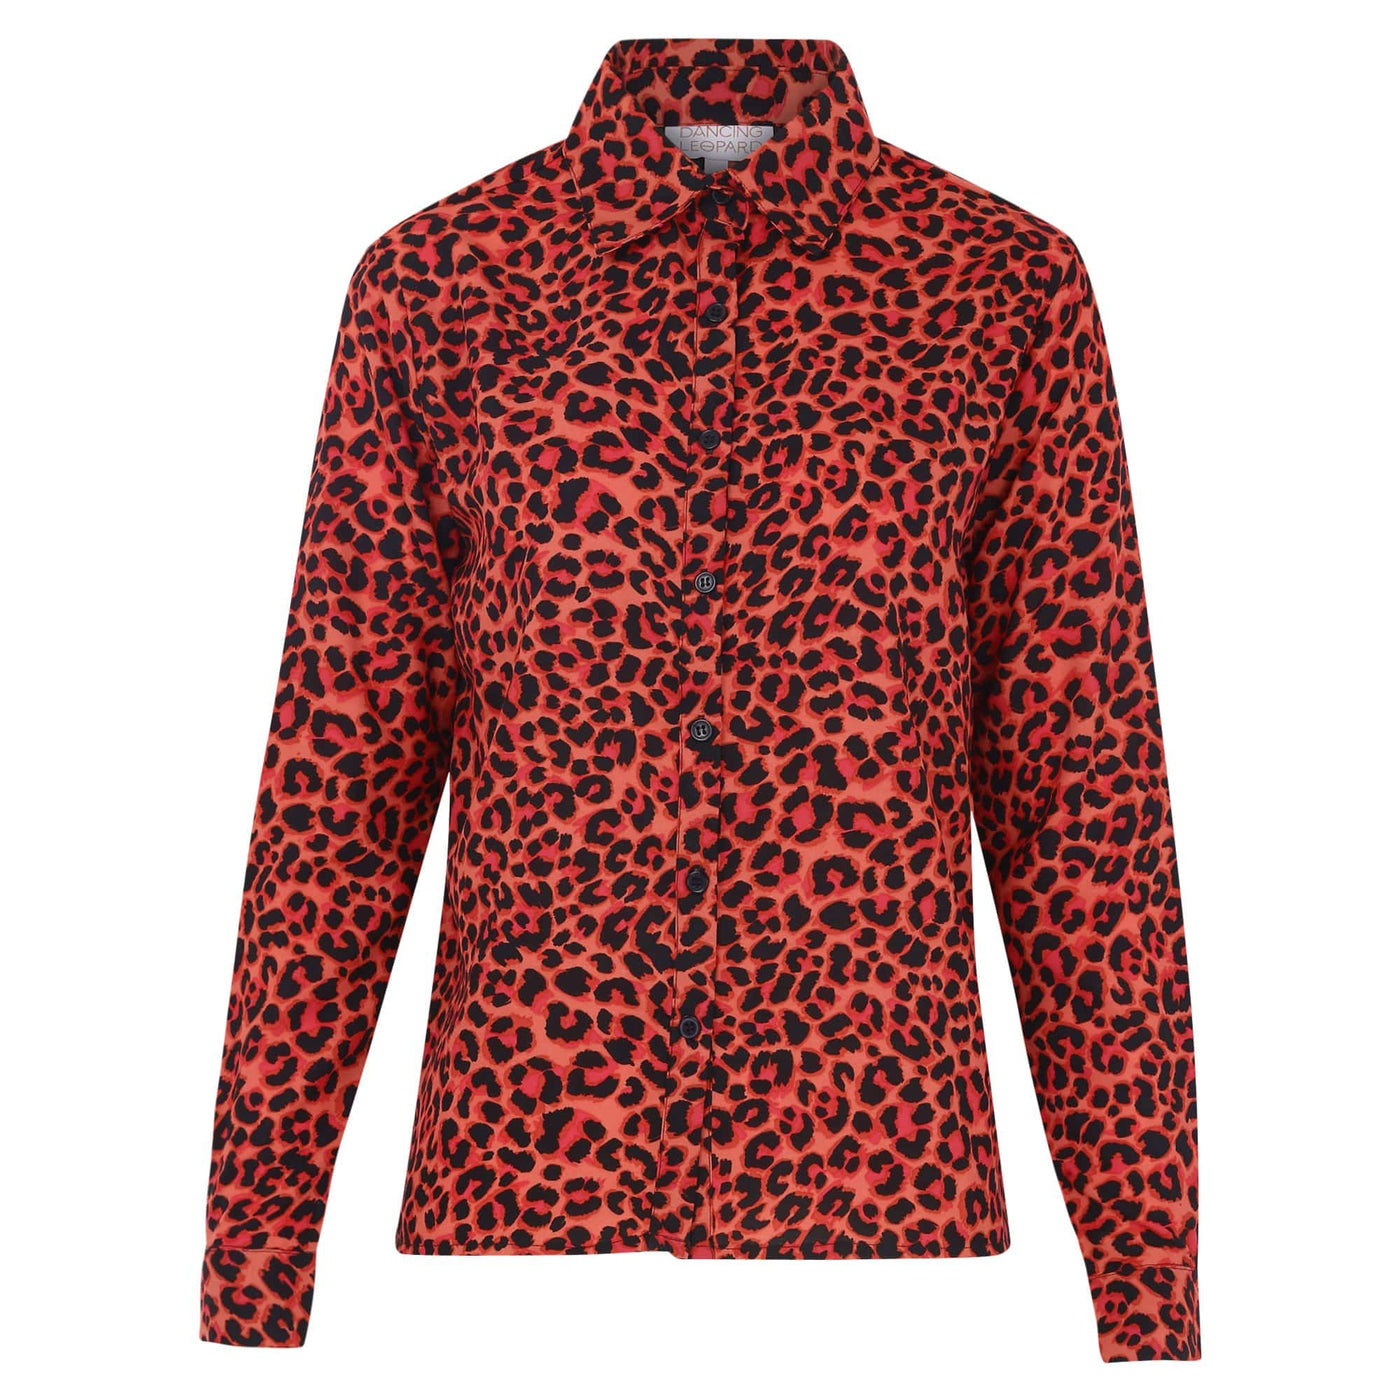 Front view of Dancing Leopard San Diego Shirt in Ruby Red Leopard Print on white background